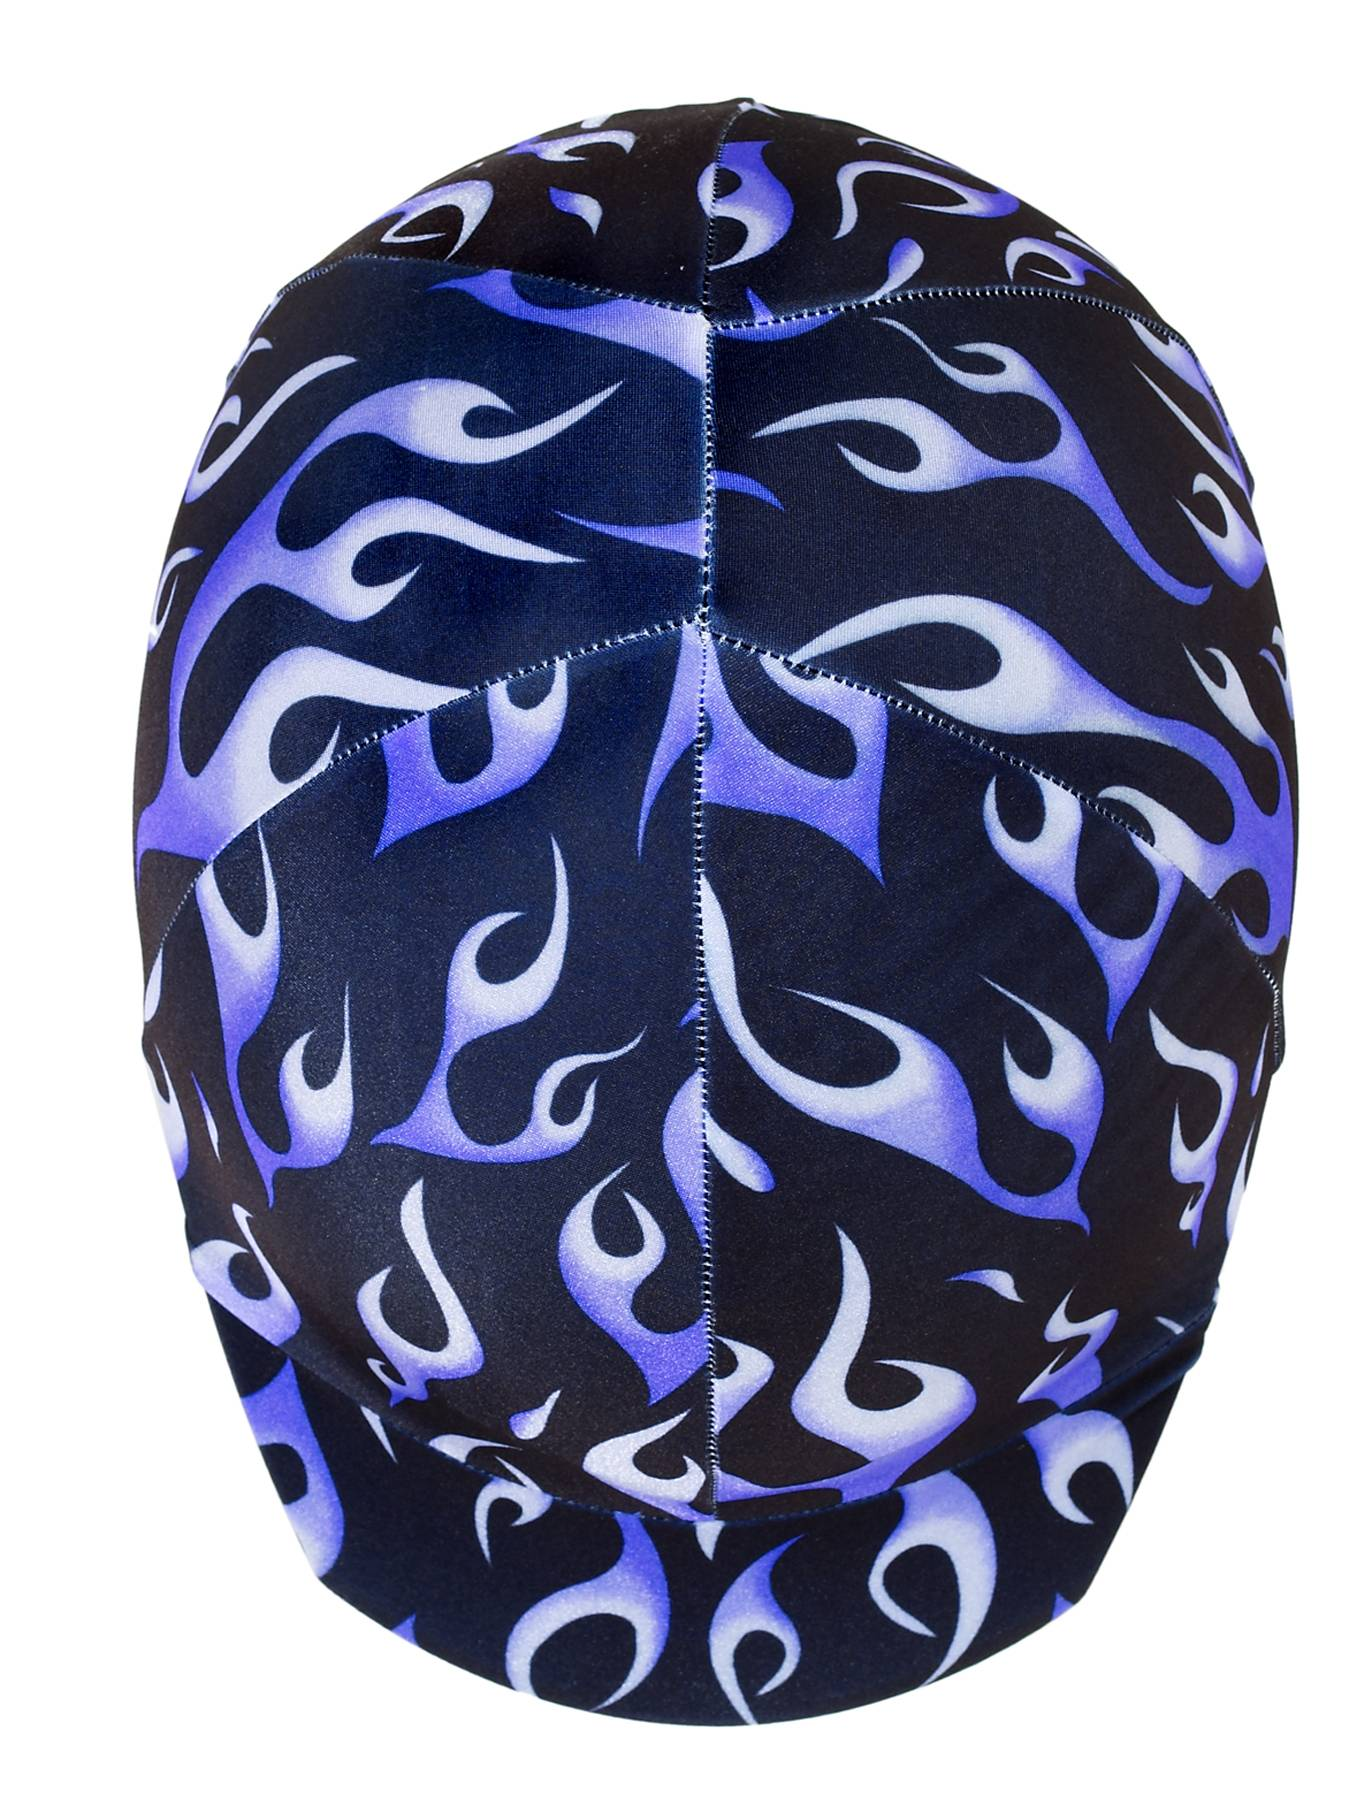 Ovation Helmet Zocks- Printed